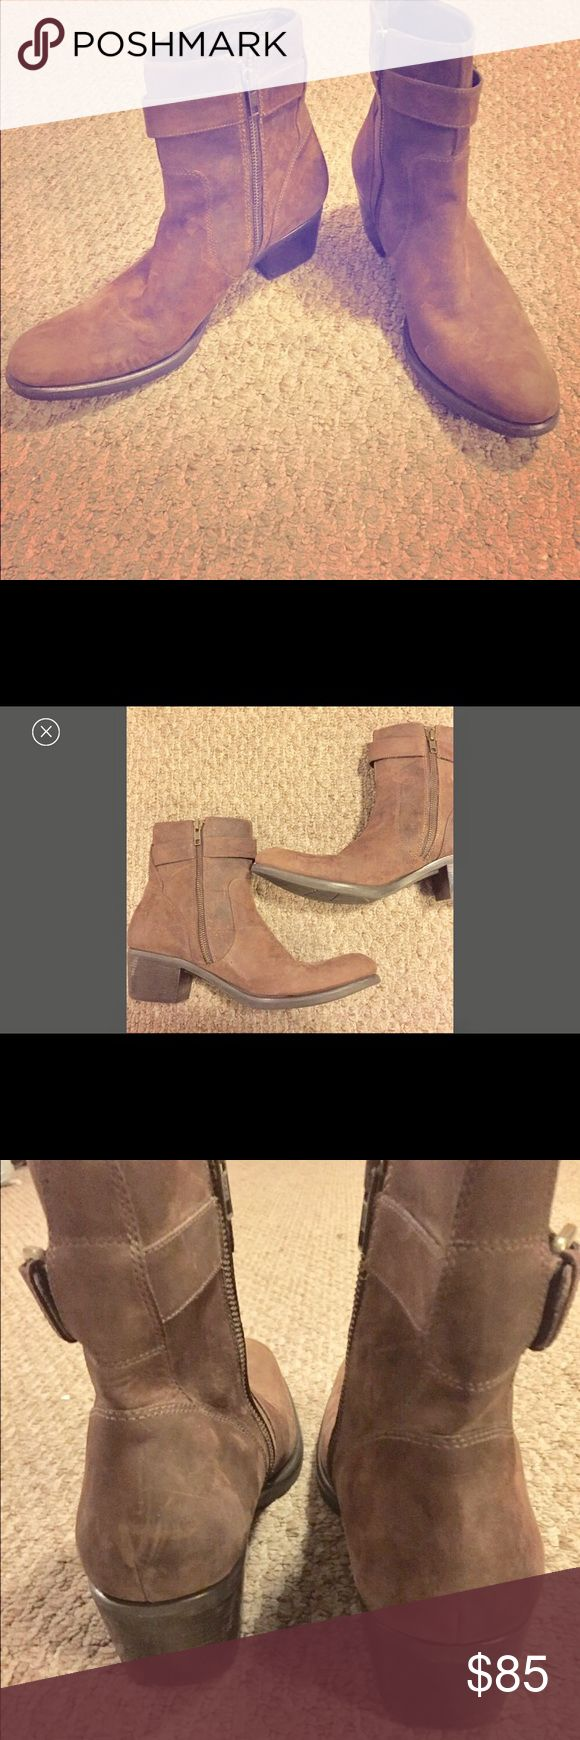 Cole Haan women's Suede Boots waterproof Cole Haan Suede waterproof buckle booty sz 10 Cole Haan Shoes Ankle Boots & Booties